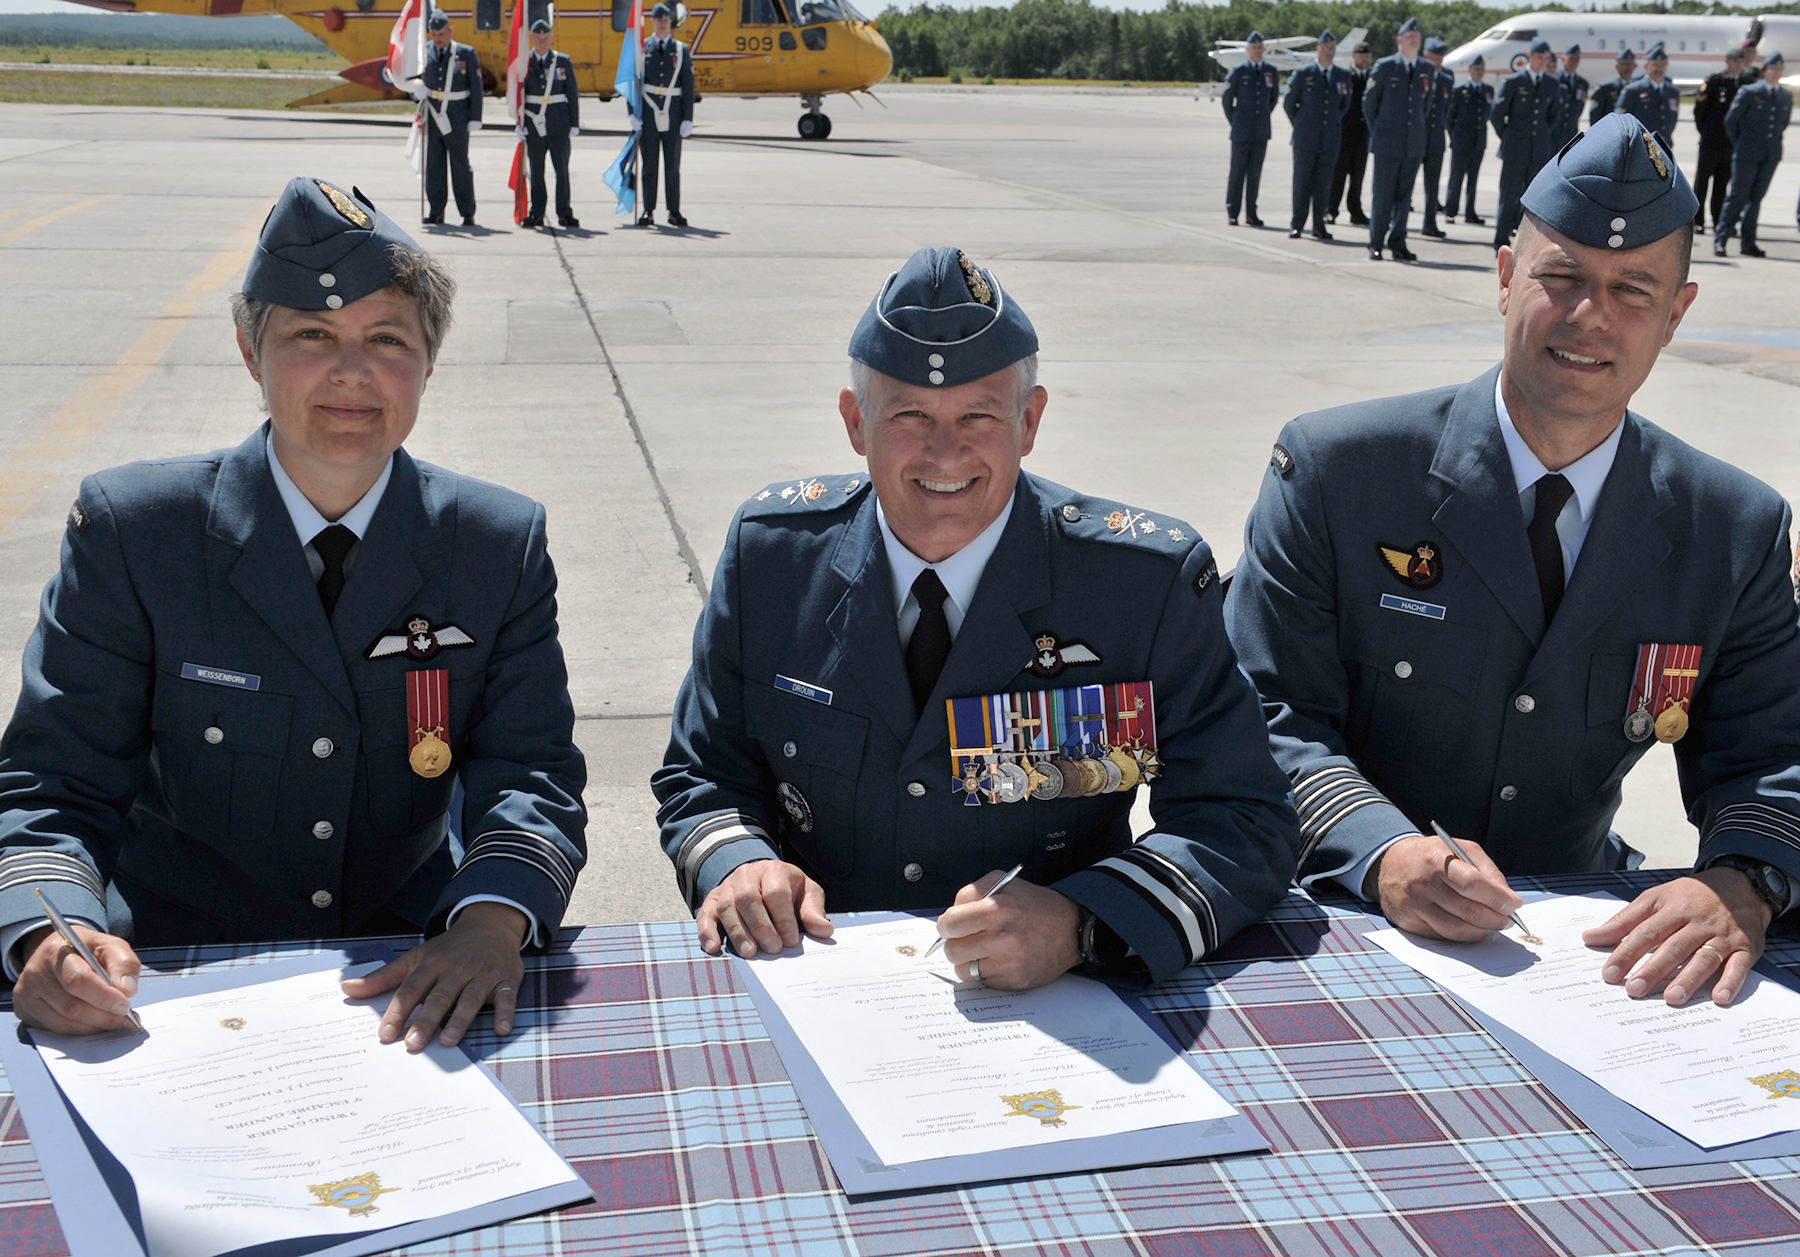 A woman and two men with pens in hand and documents in front of them sit outdoors at a table covered with a tartan cloth. Behand the three are aircraft, and people in uniforms, including three flag-bearers.